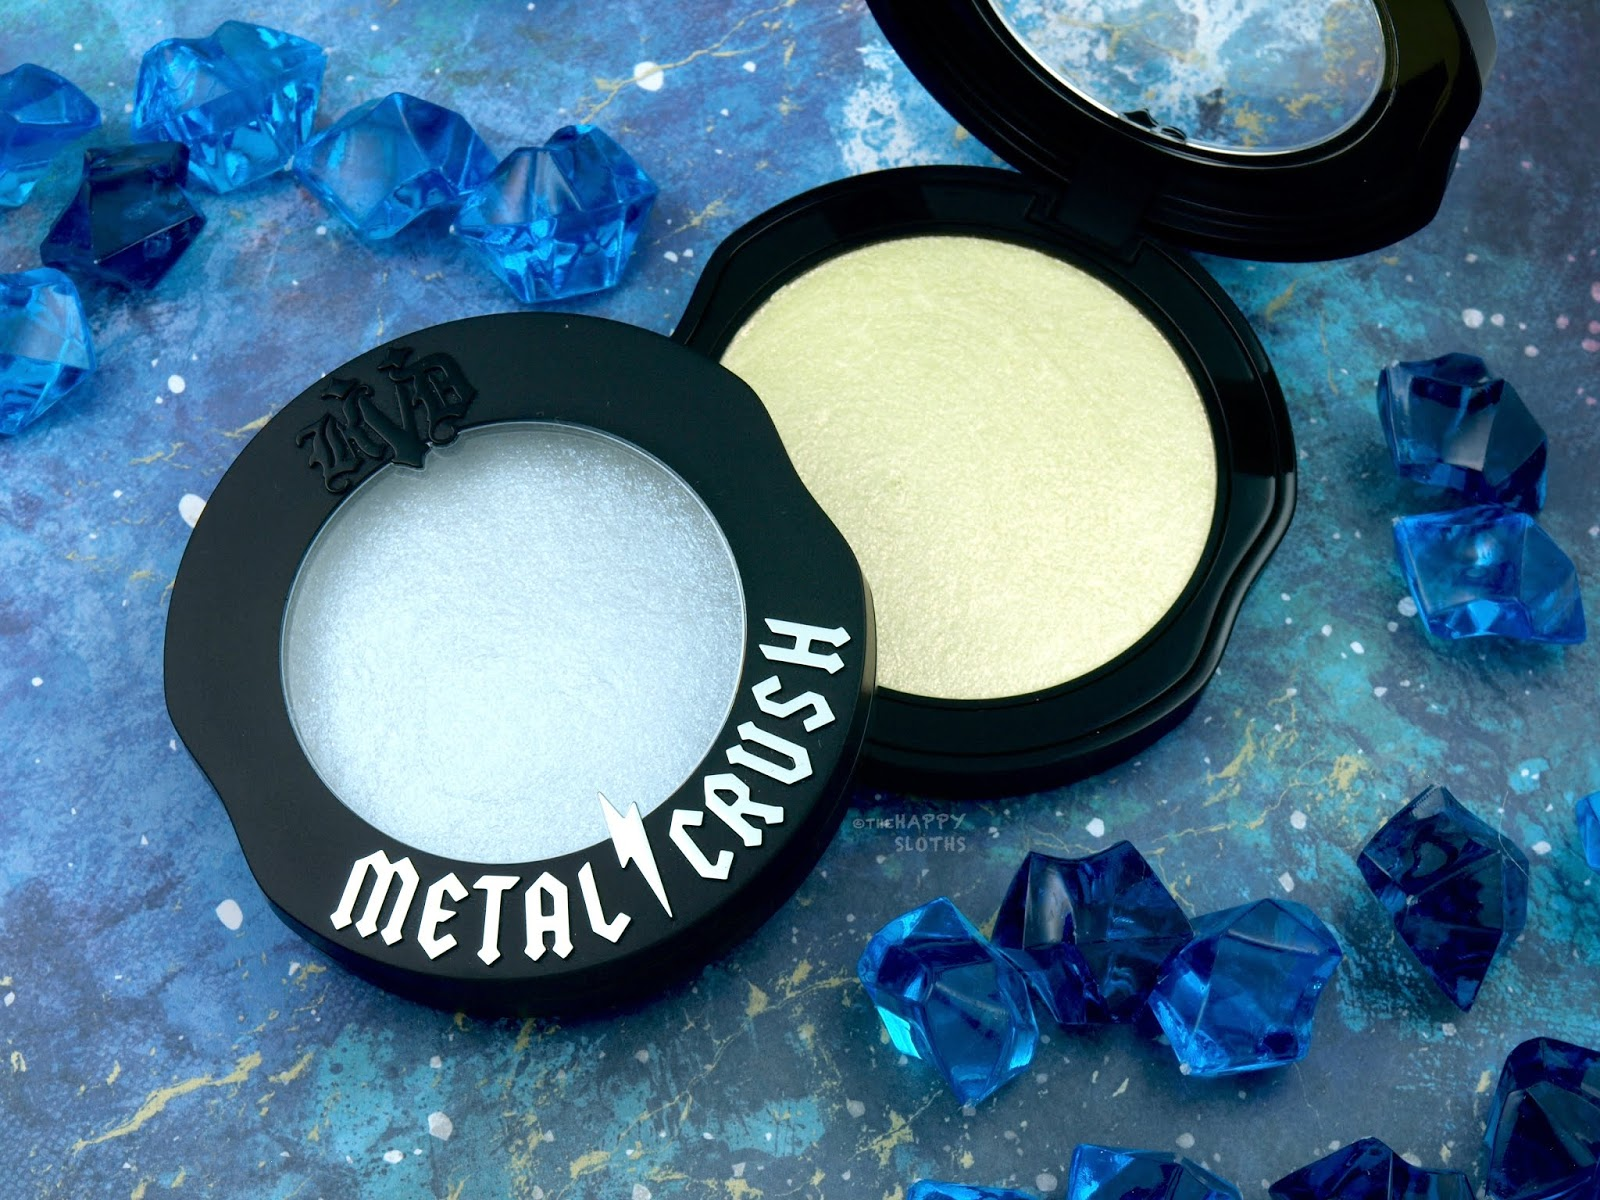 Kat Von D | Metal Crush Extreme Highlighter: Review and Swatches